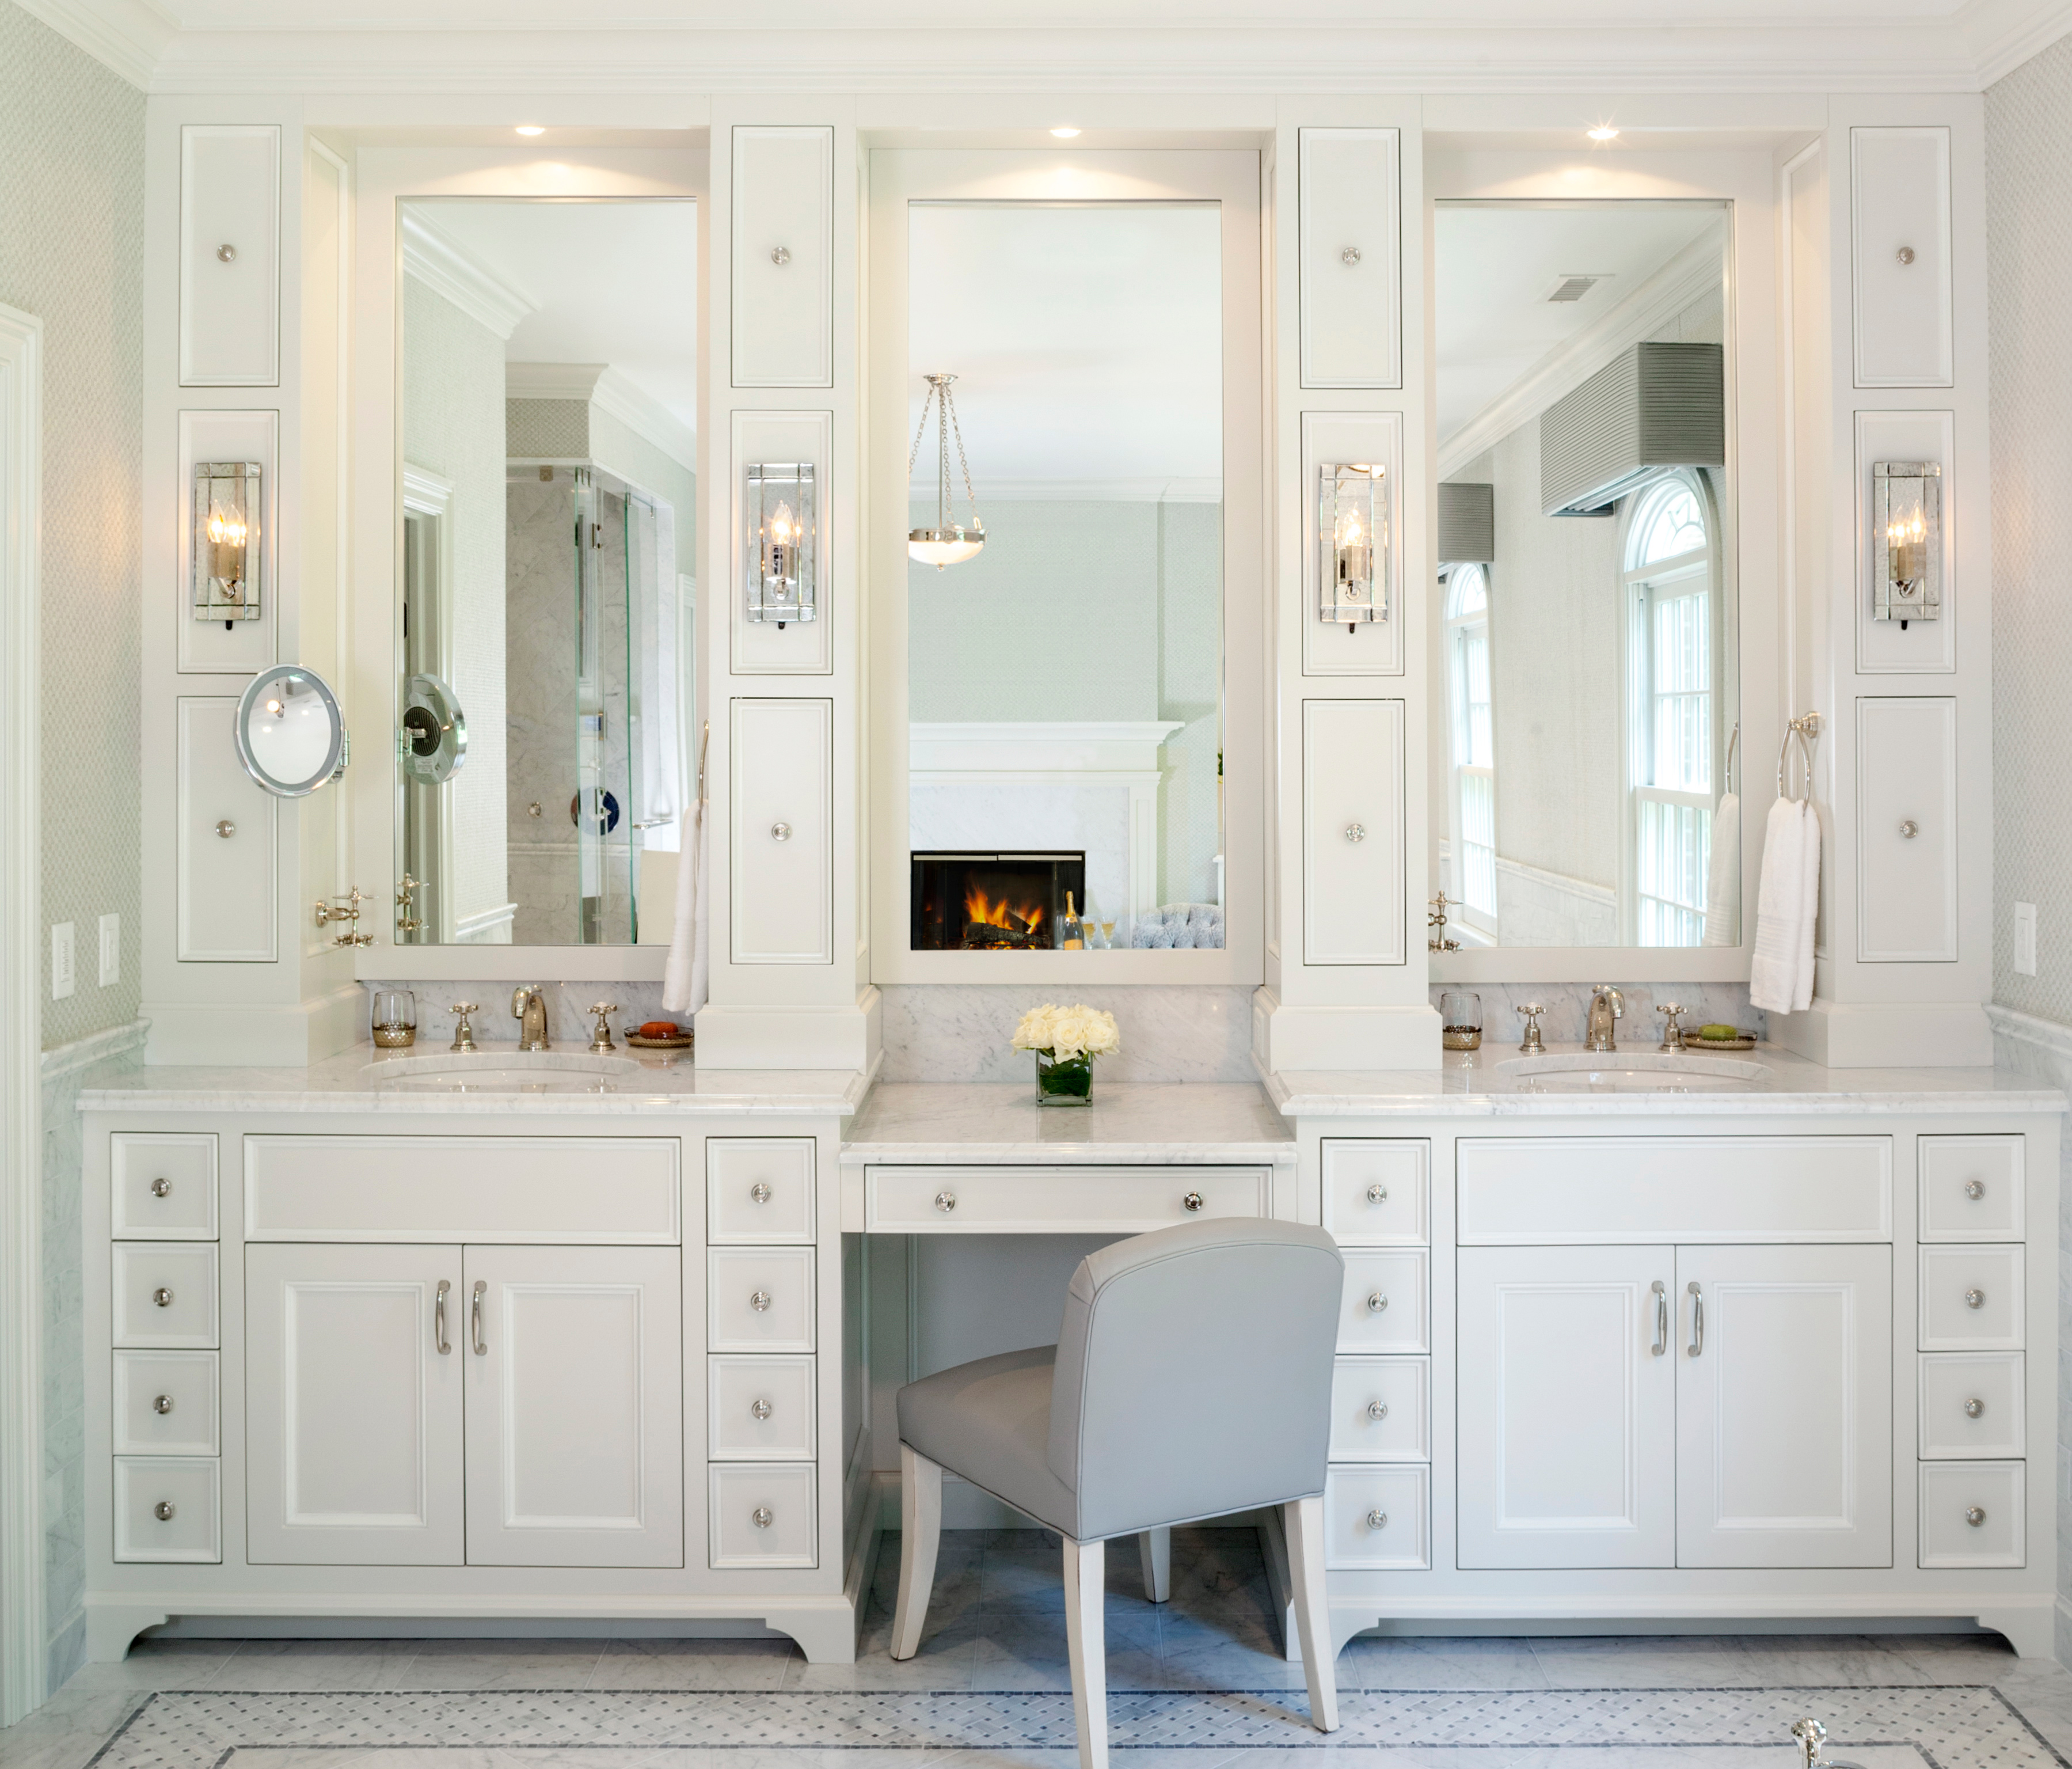 When the TV mirror is switched off, you'd never guess this traditional vanity had such a high-tech component!